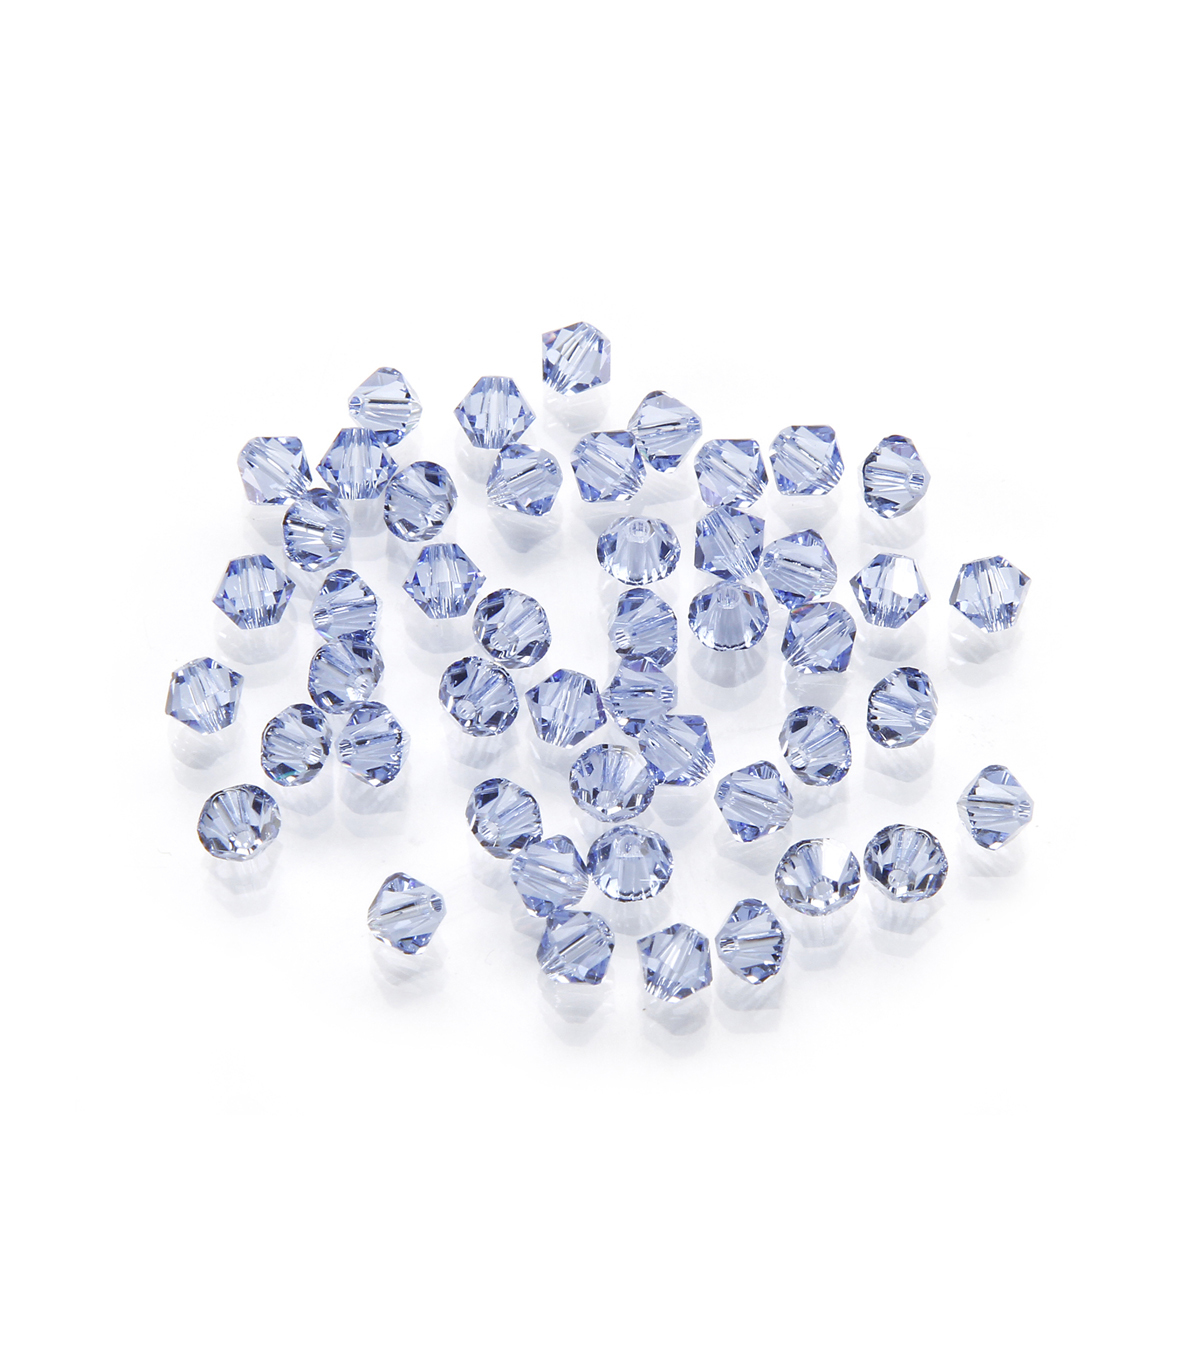 Swarovski™ Faceted Bicone Crystal Beads, Lt. Sapphire, 4mm, 48pc/pkg